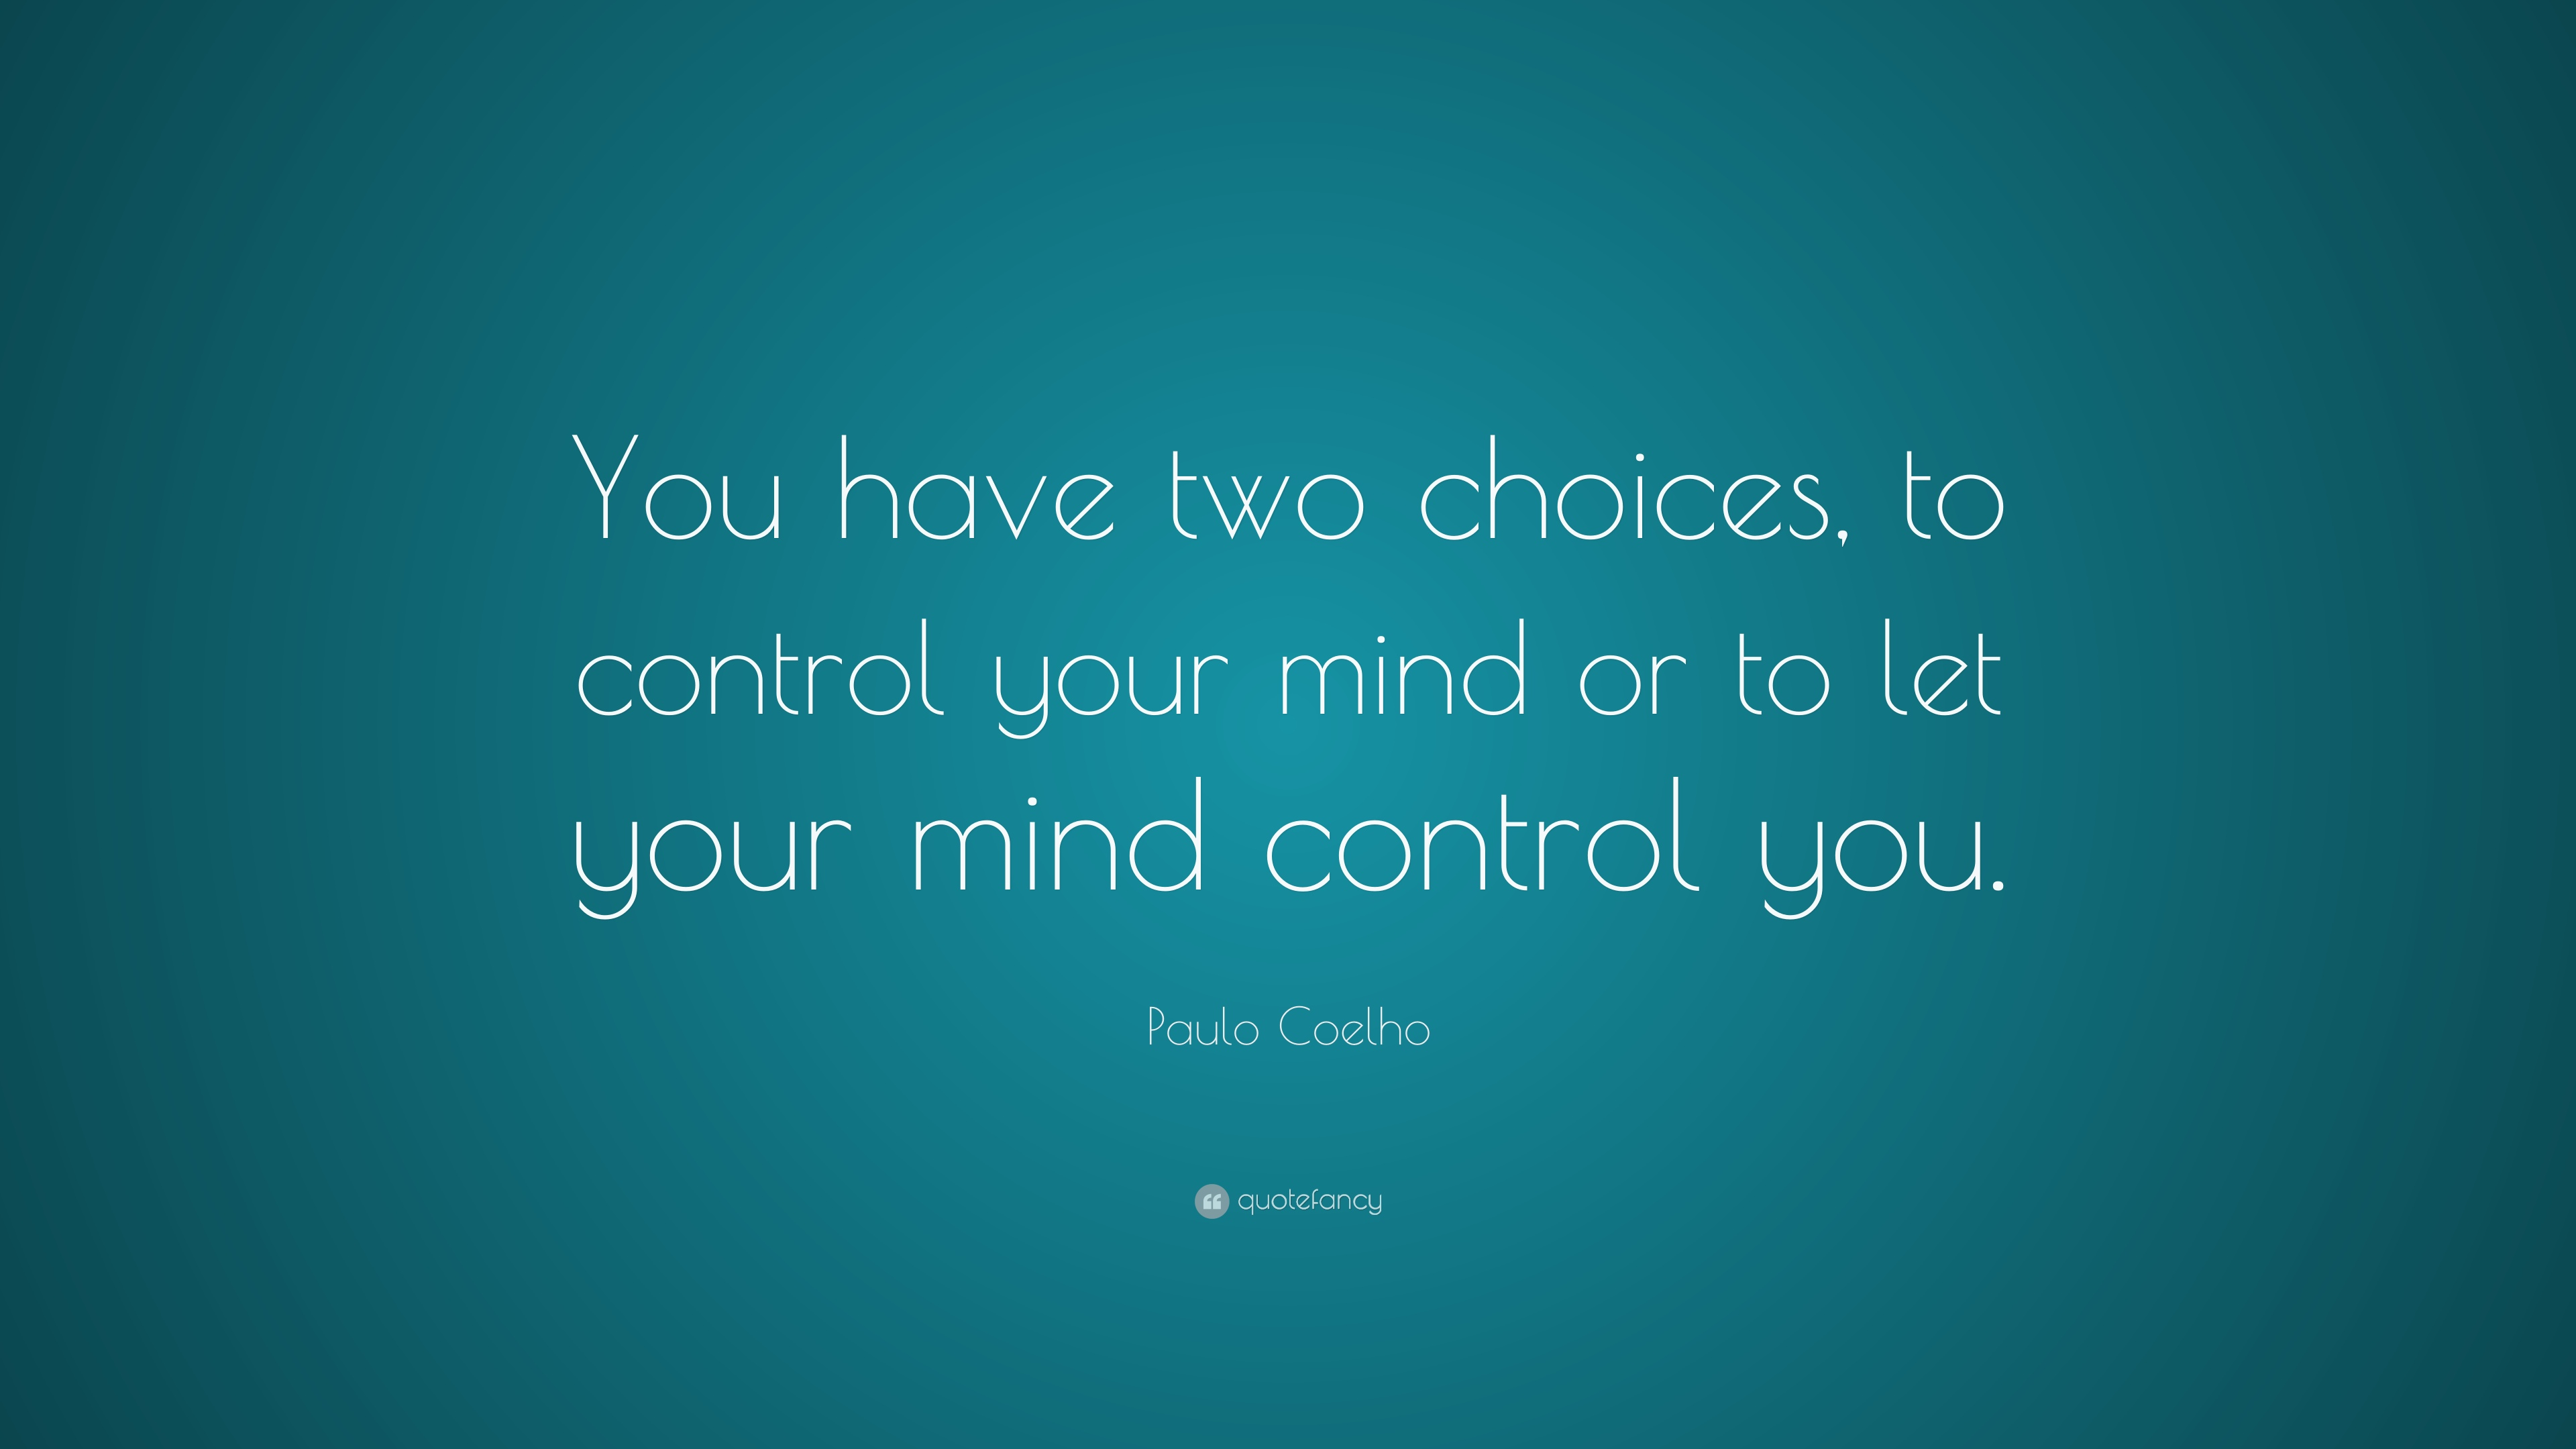 Paulo Coelho Quote You Have Two Choices To Control Your Mind Or To Let Your Mind Control You